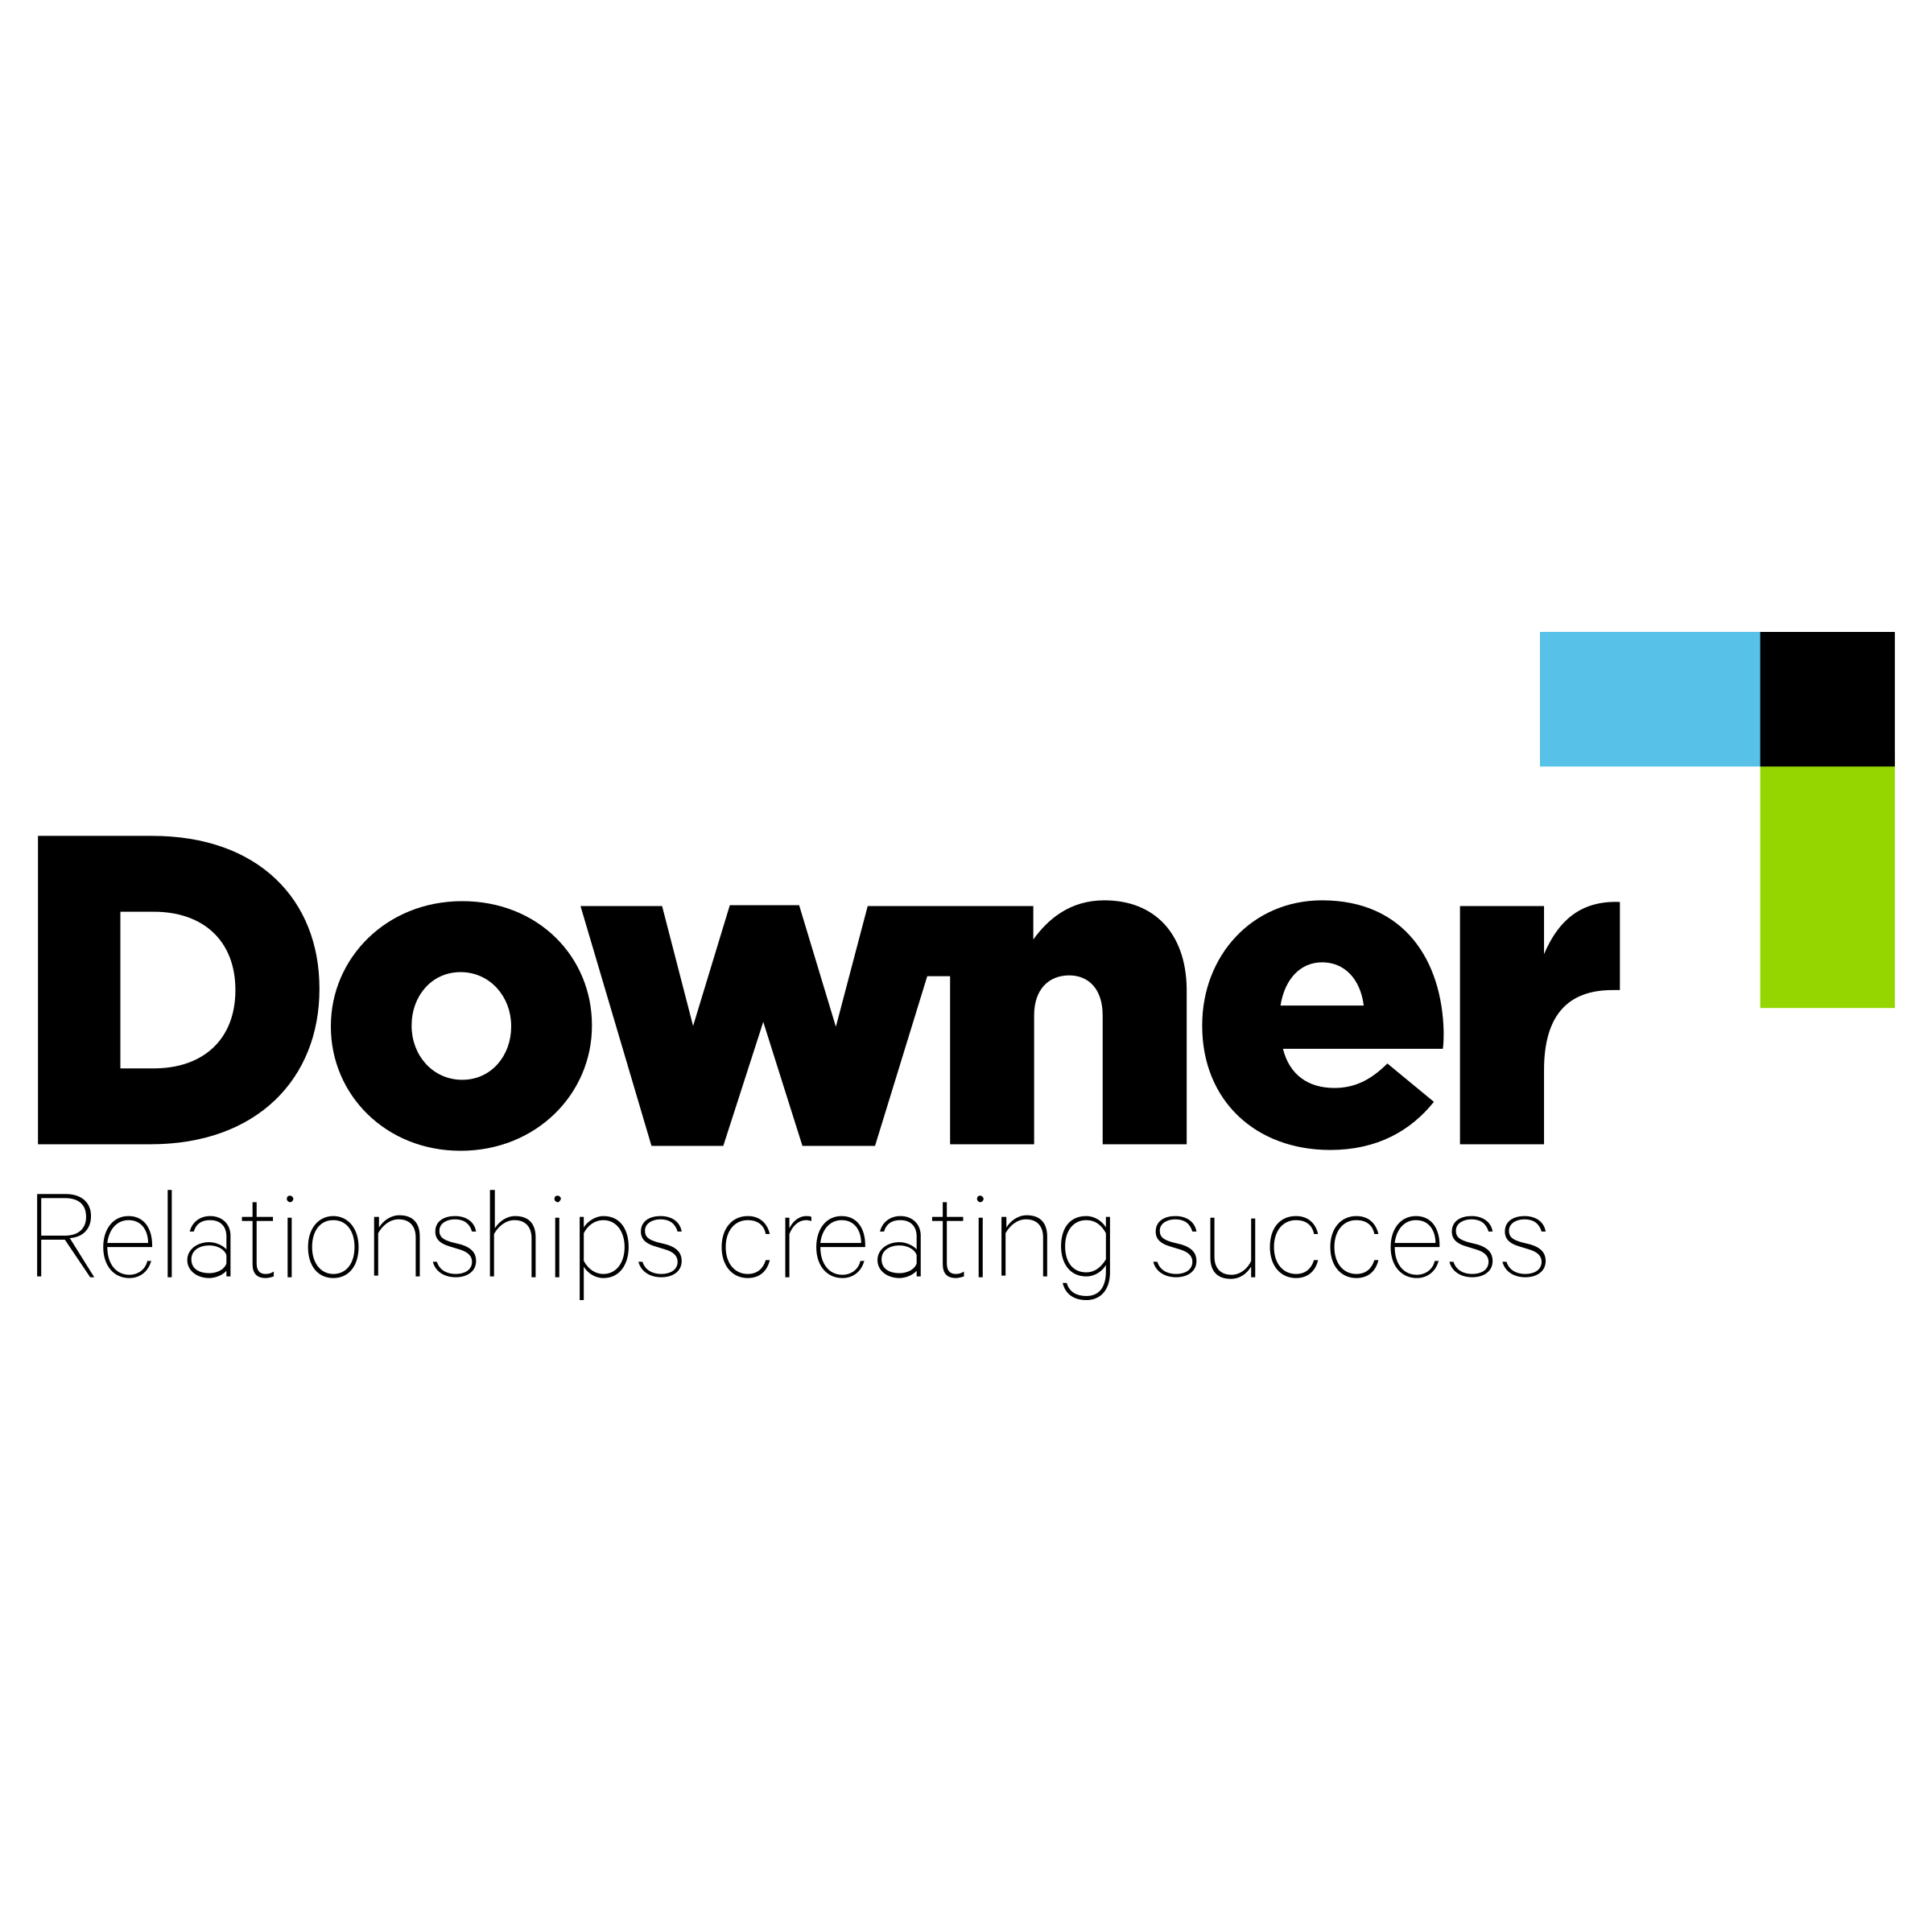 https://freightquip.com/production/wp-content/uploads/2020/07/Downer-Logo.jpg